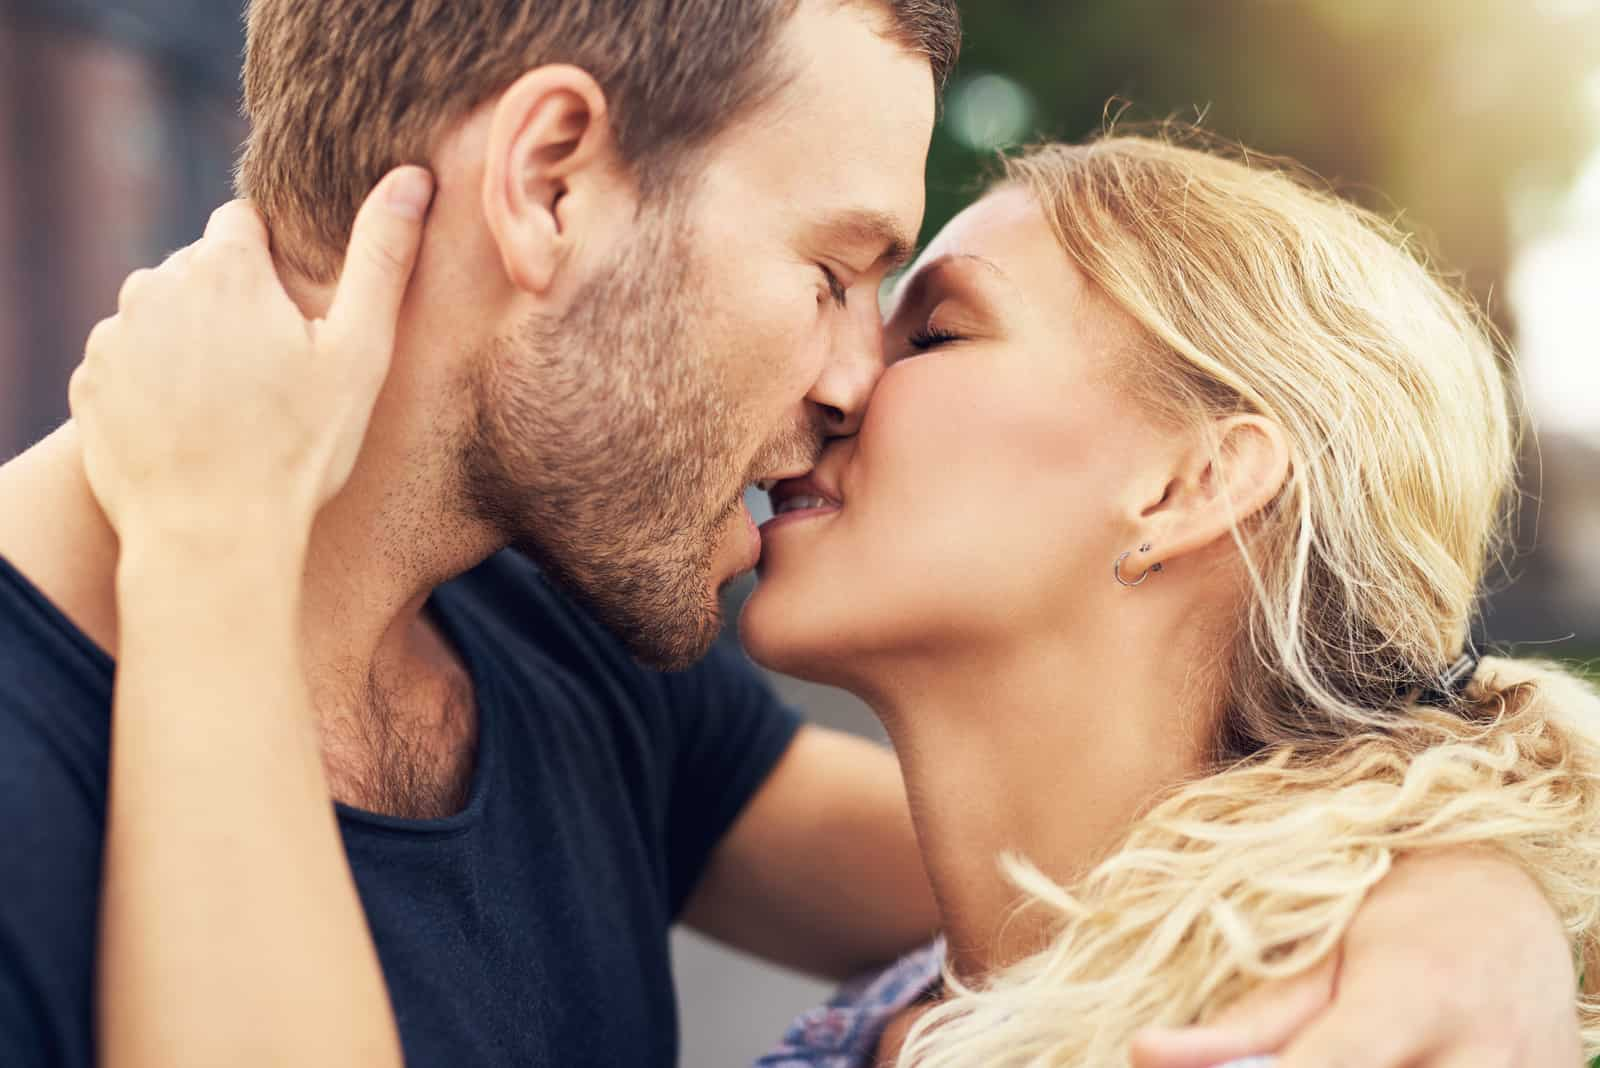 couple deeply in love sharing a romantic kiss,